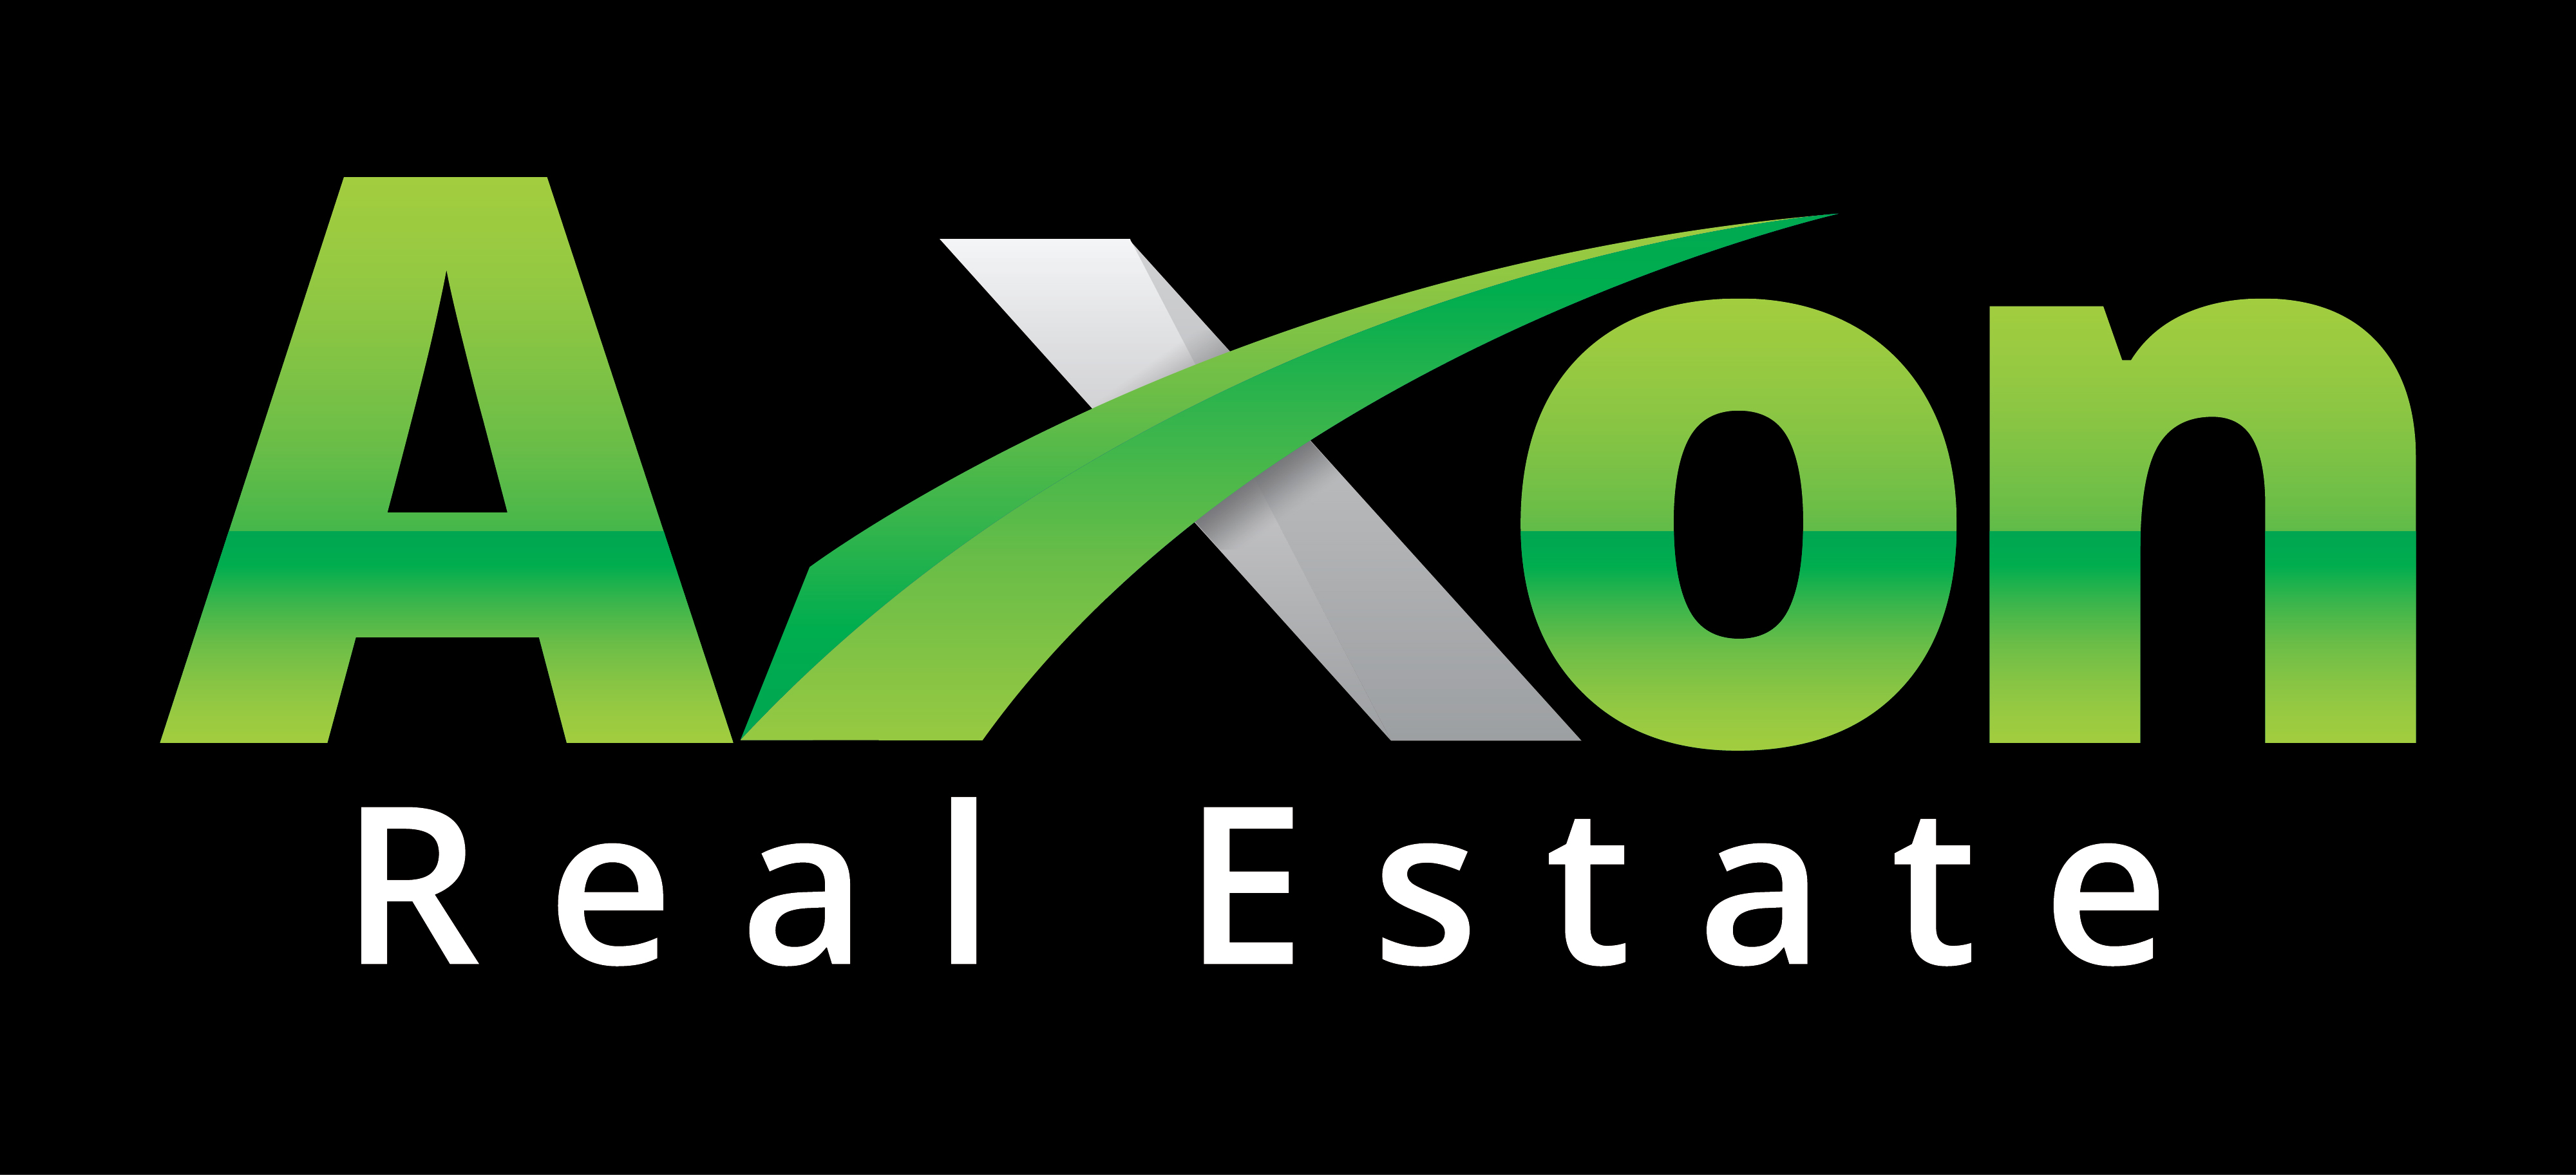 Commercial Real Estate | United States | Axon Real Estate